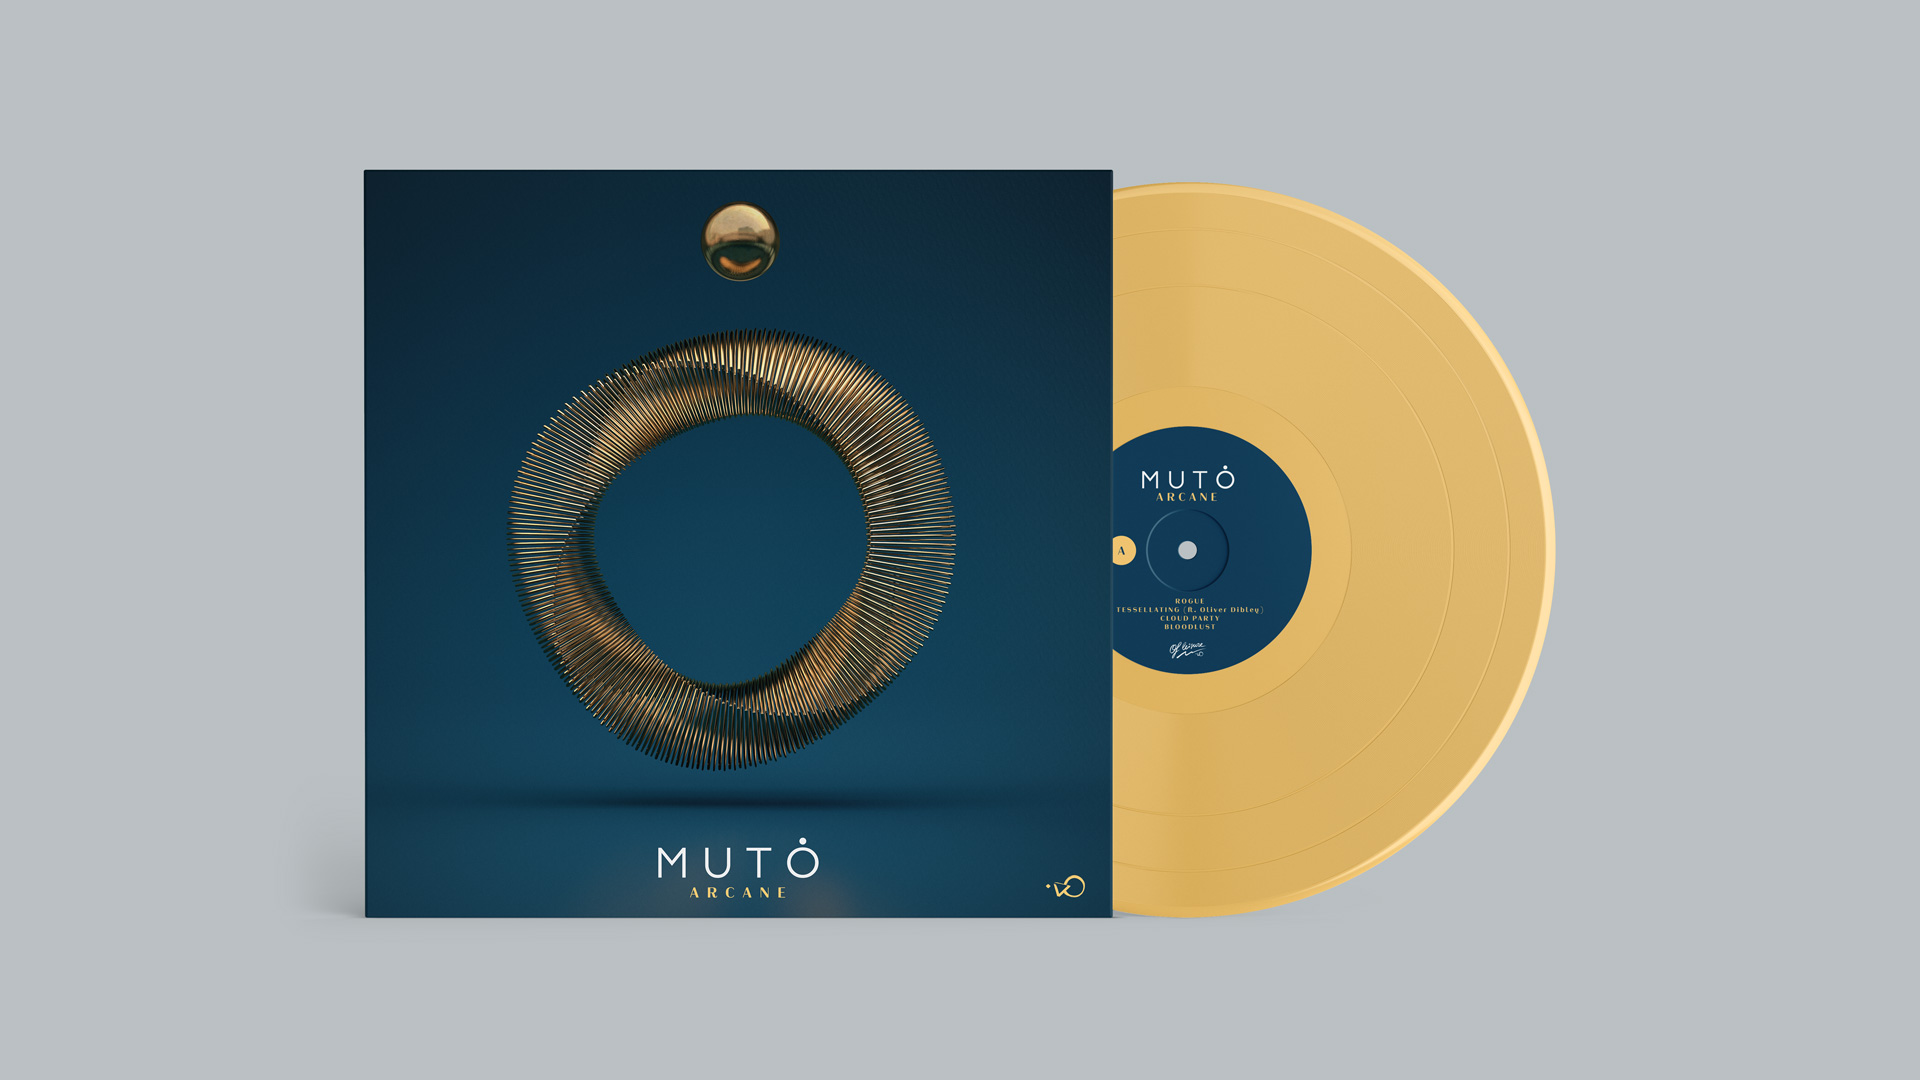 MUTO-EP_front_16x9-02A.jpg